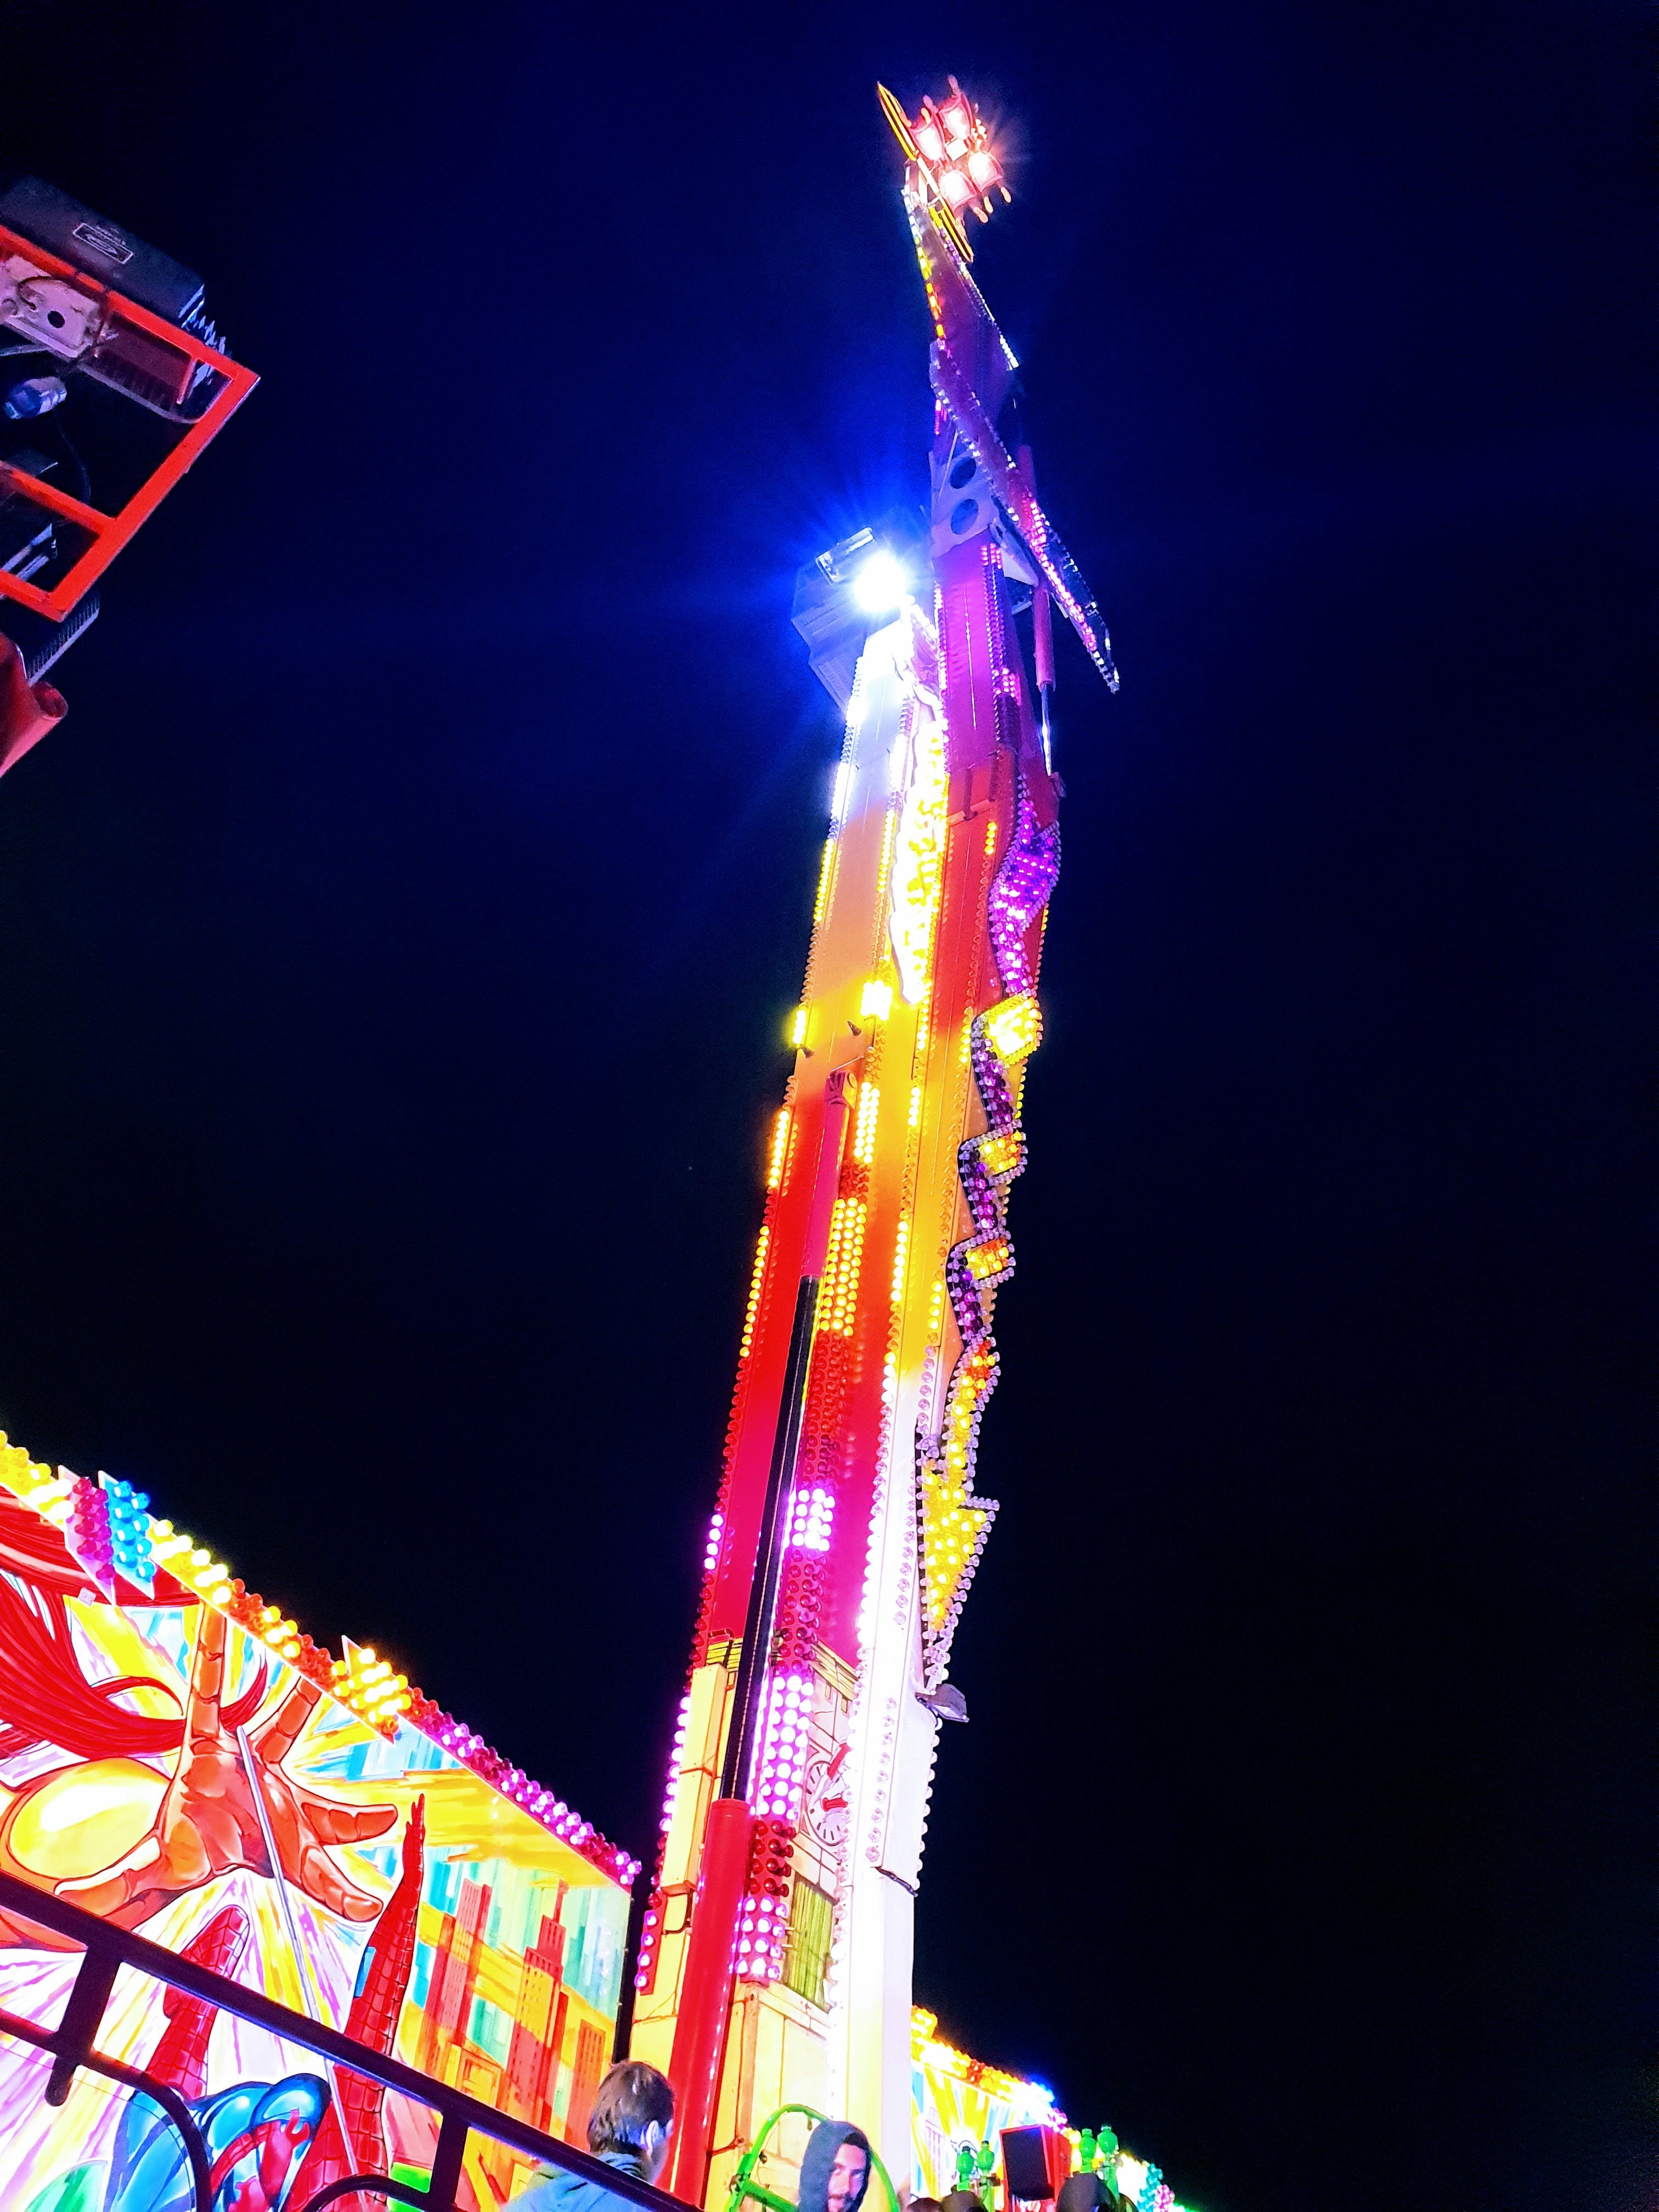 Free stock photo of funfair